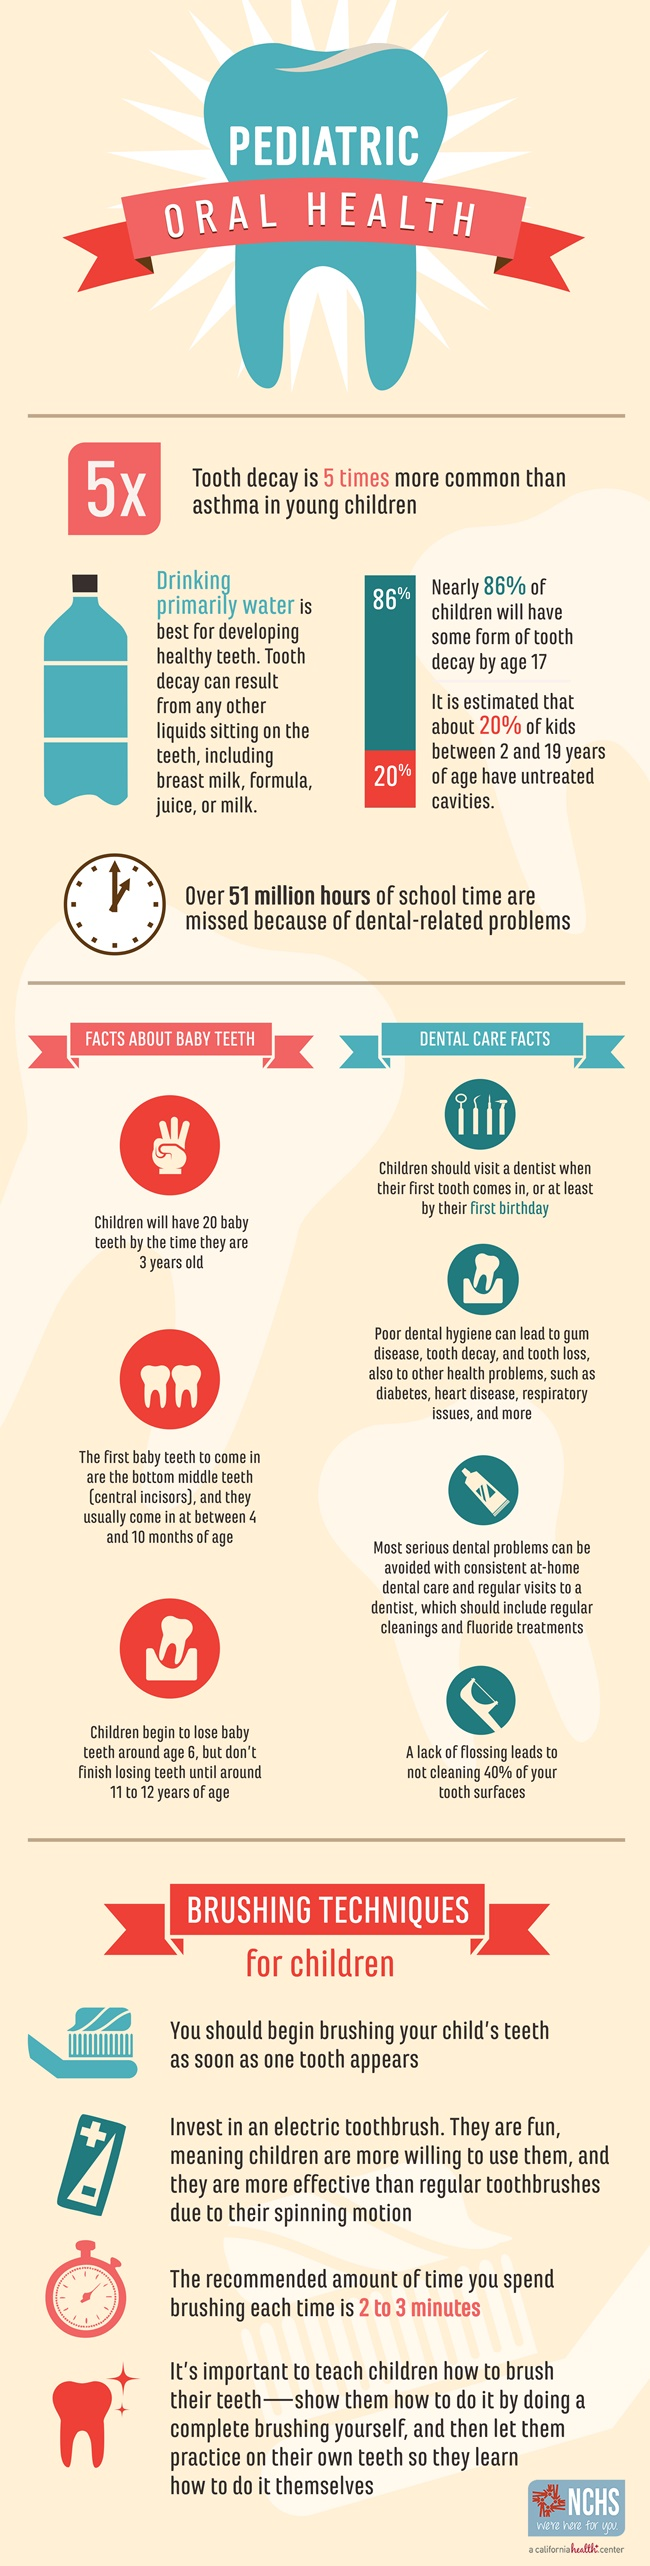 NCHS-Pediatric-Oral-Health-Infographic-2